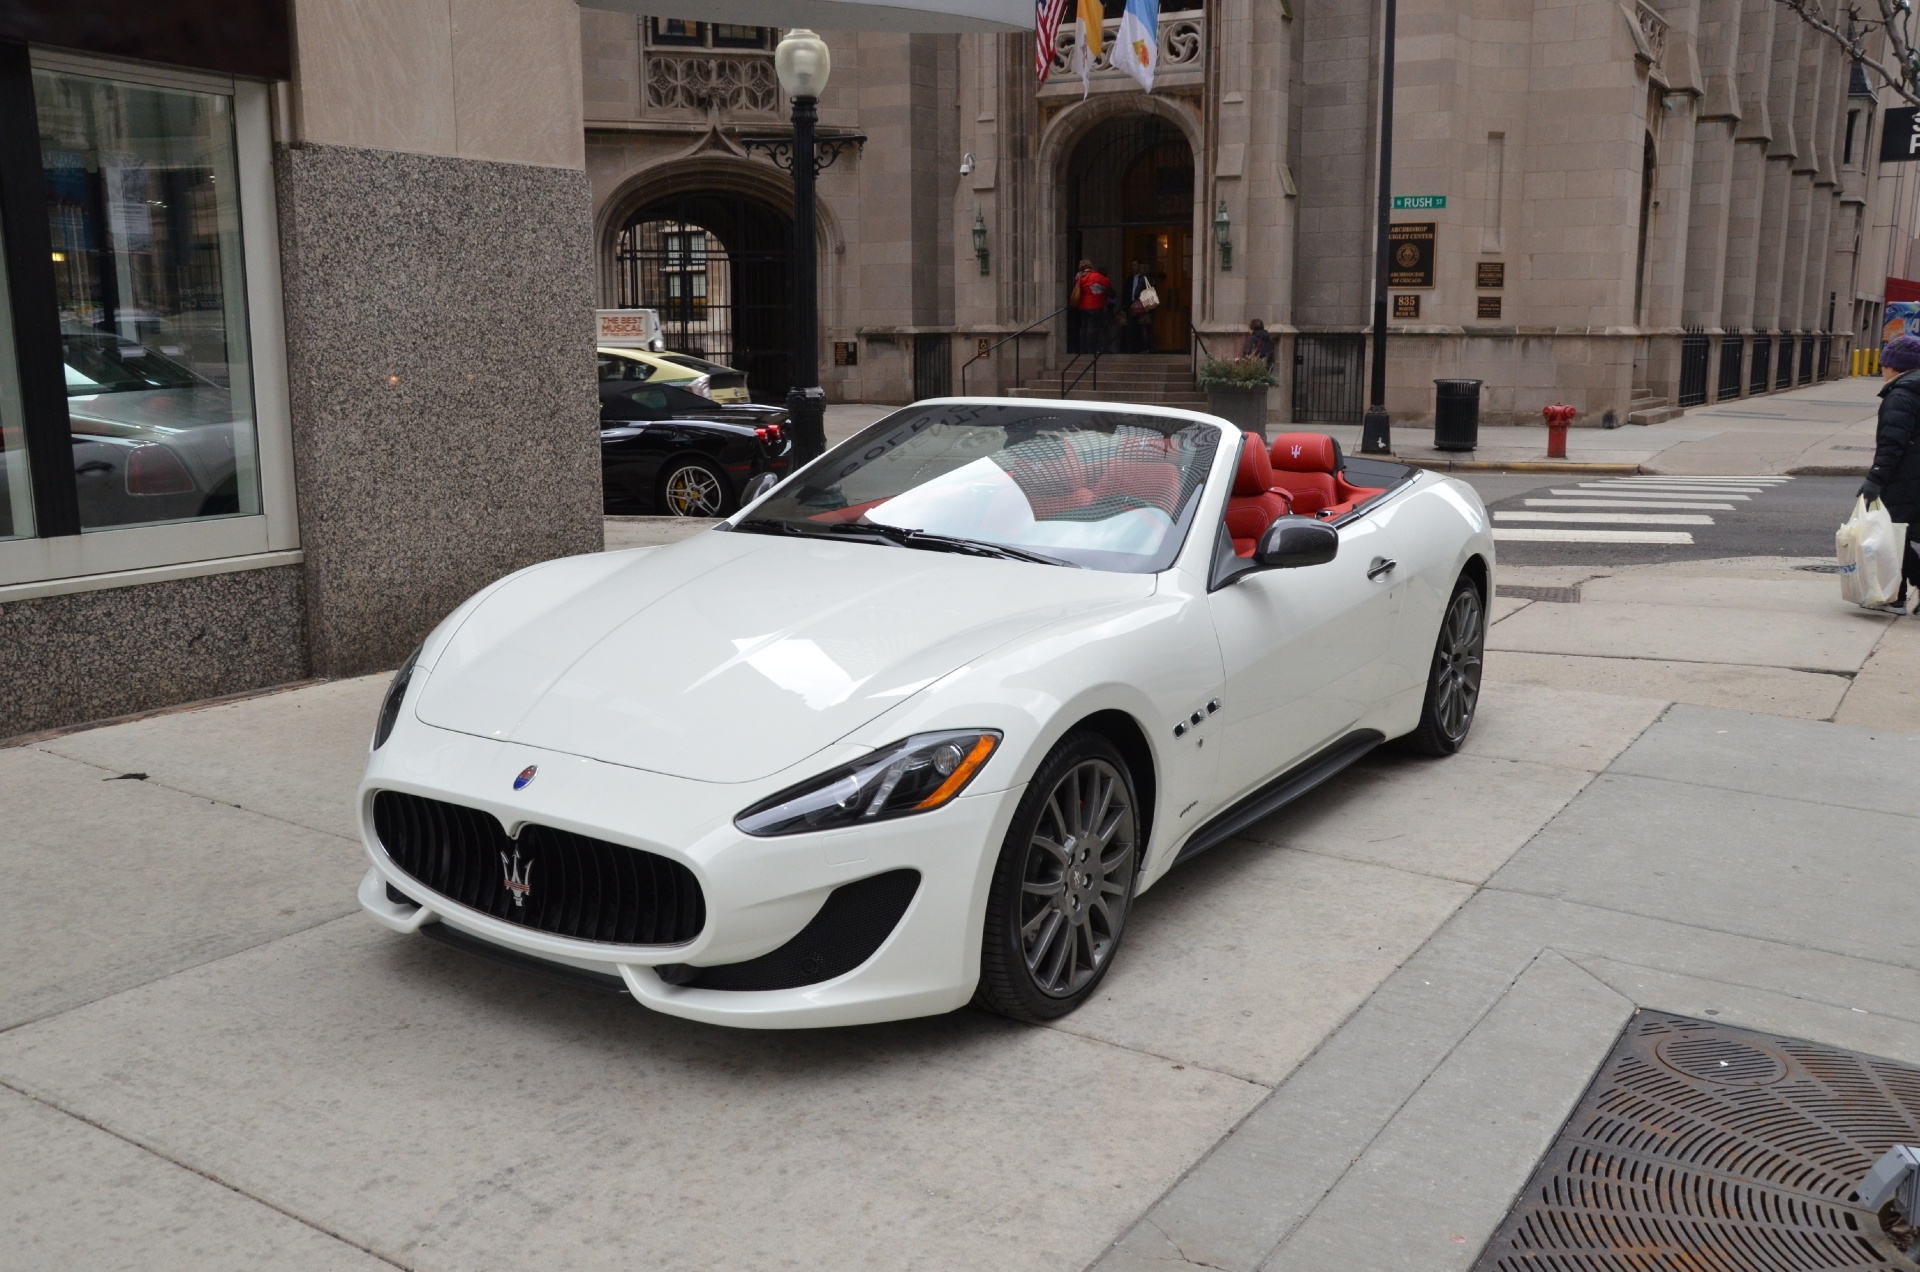 West Coast Auto >> 2013 Maserati GranTurismo Convertible Sport Sport | New Bentley | New Lamborghini | New Bugatti ...